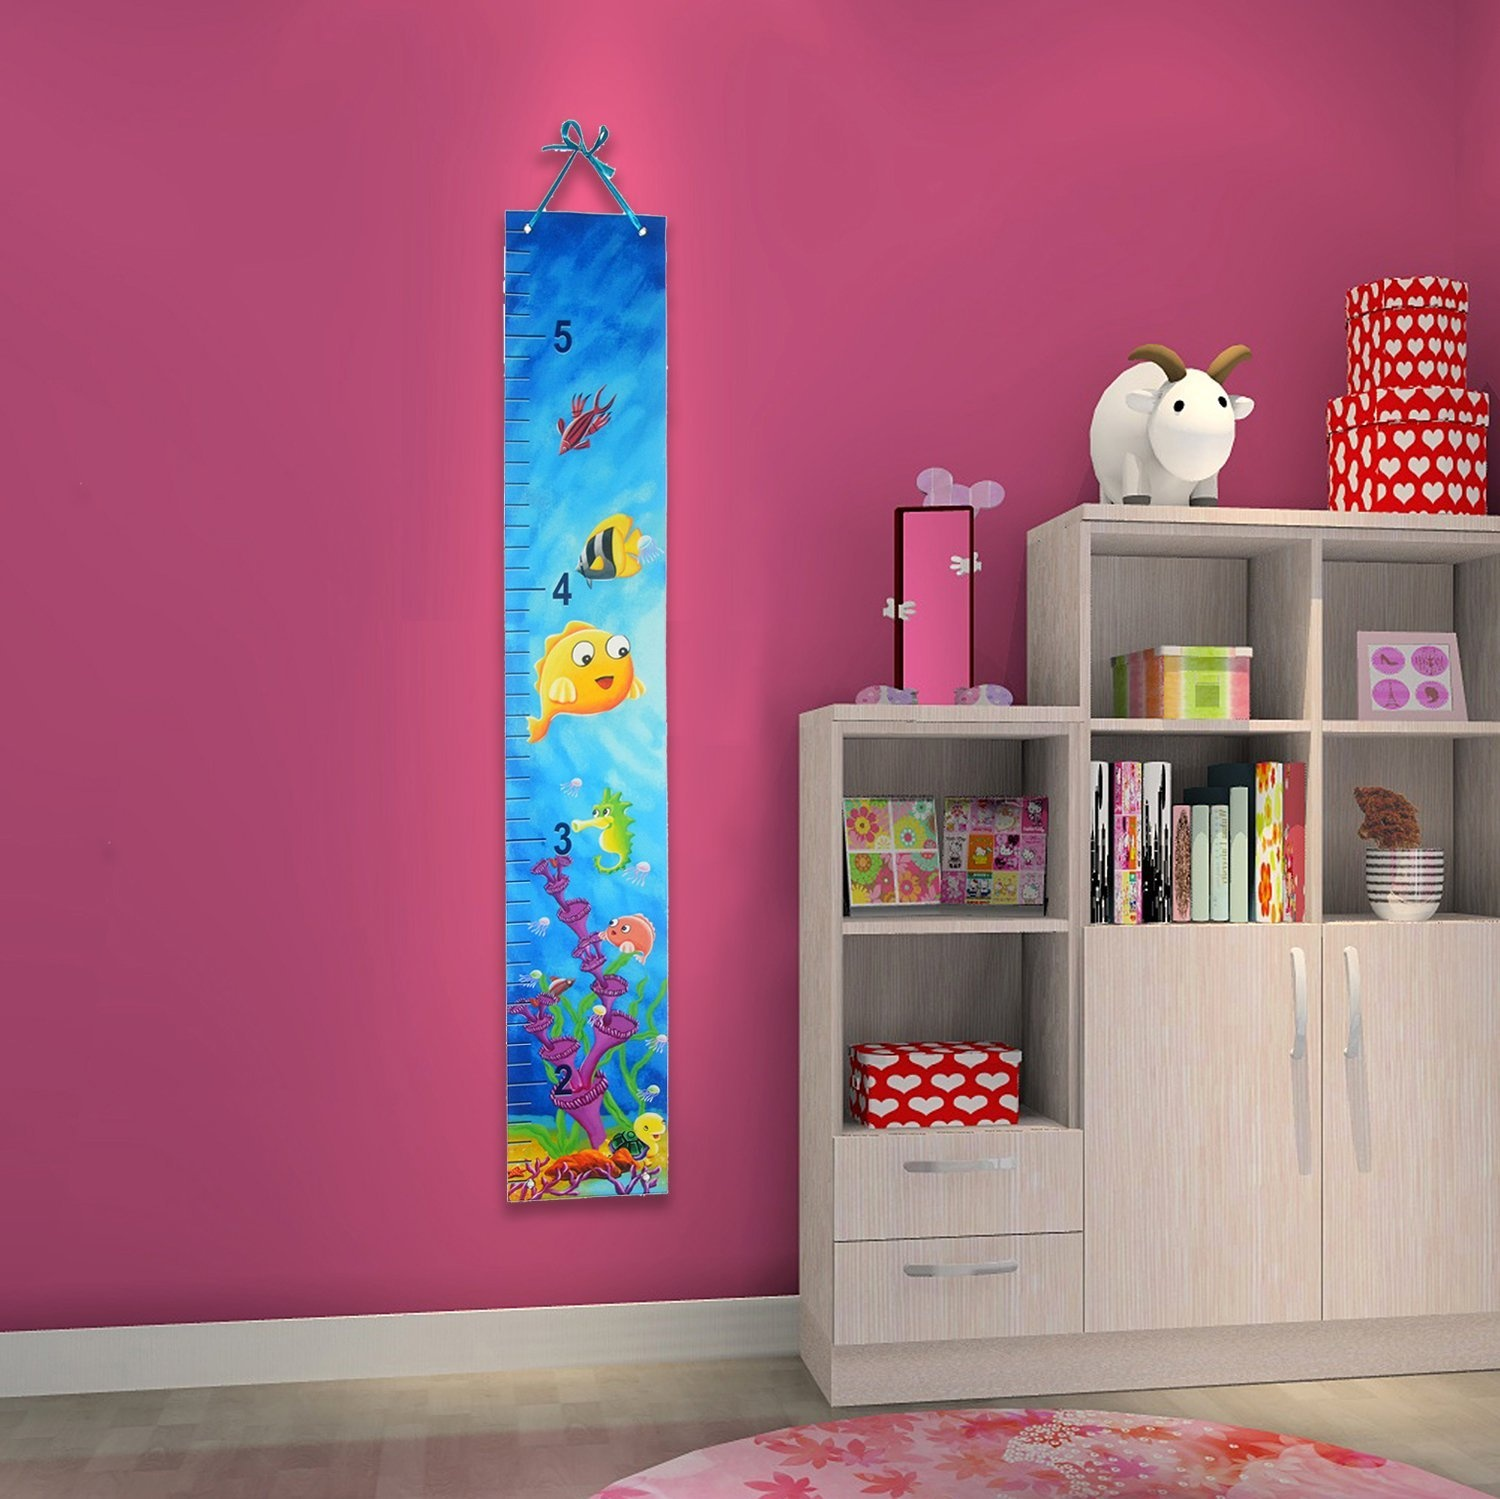 Minnie Mouse Growth Chart Height Measure Kids Baby Bedroom Wall